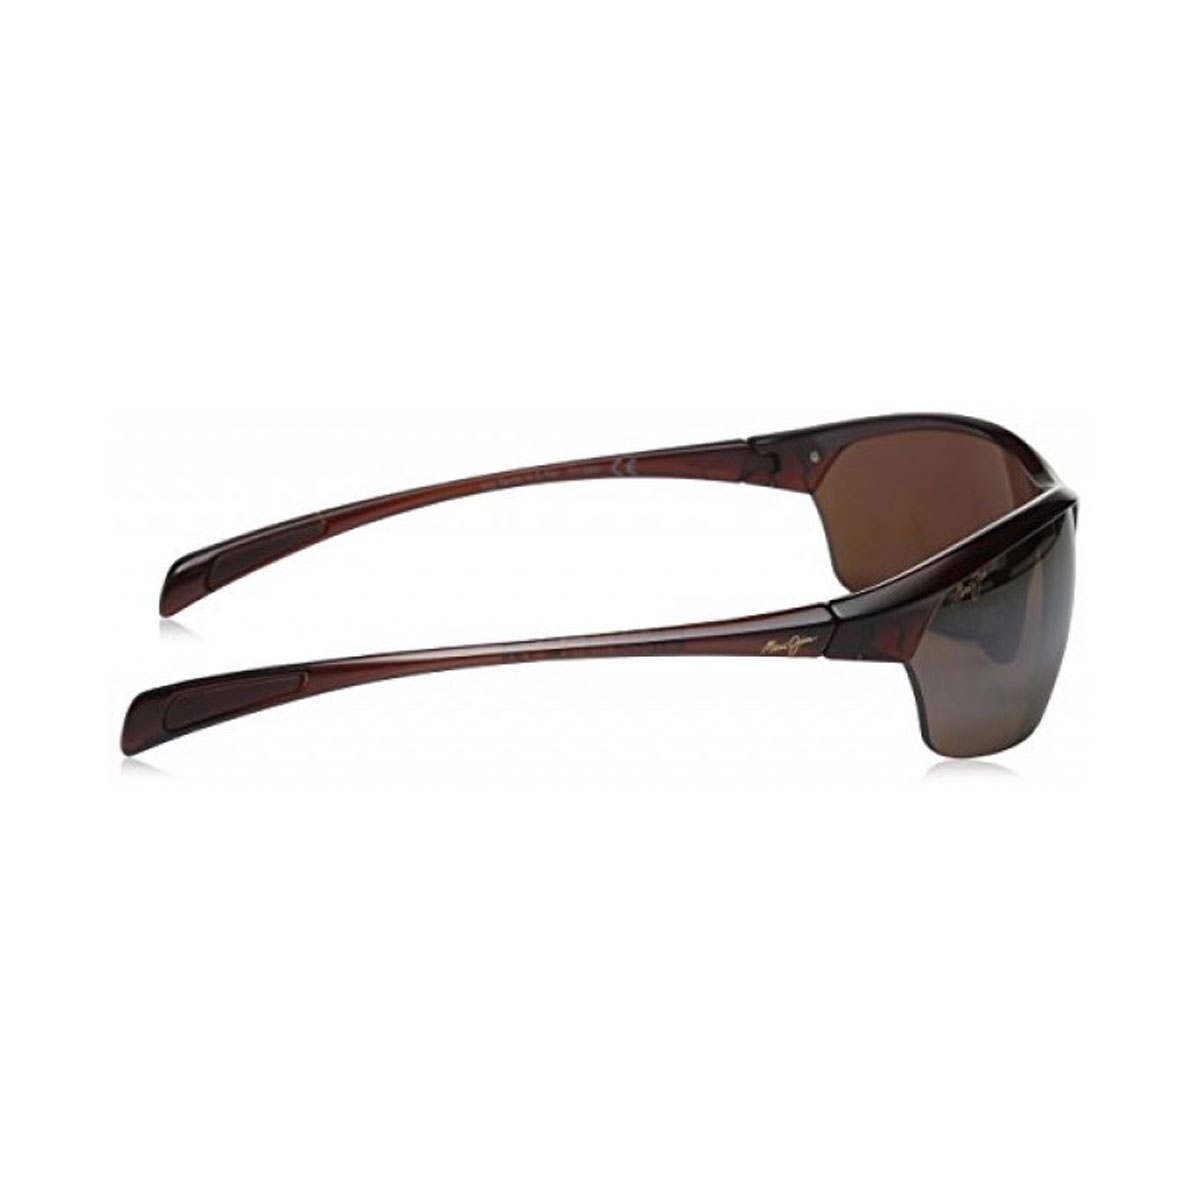 b8b141092bf ... Image of Maui Jim Hot Sands Sunglasses - HCL Bronze Lens ...